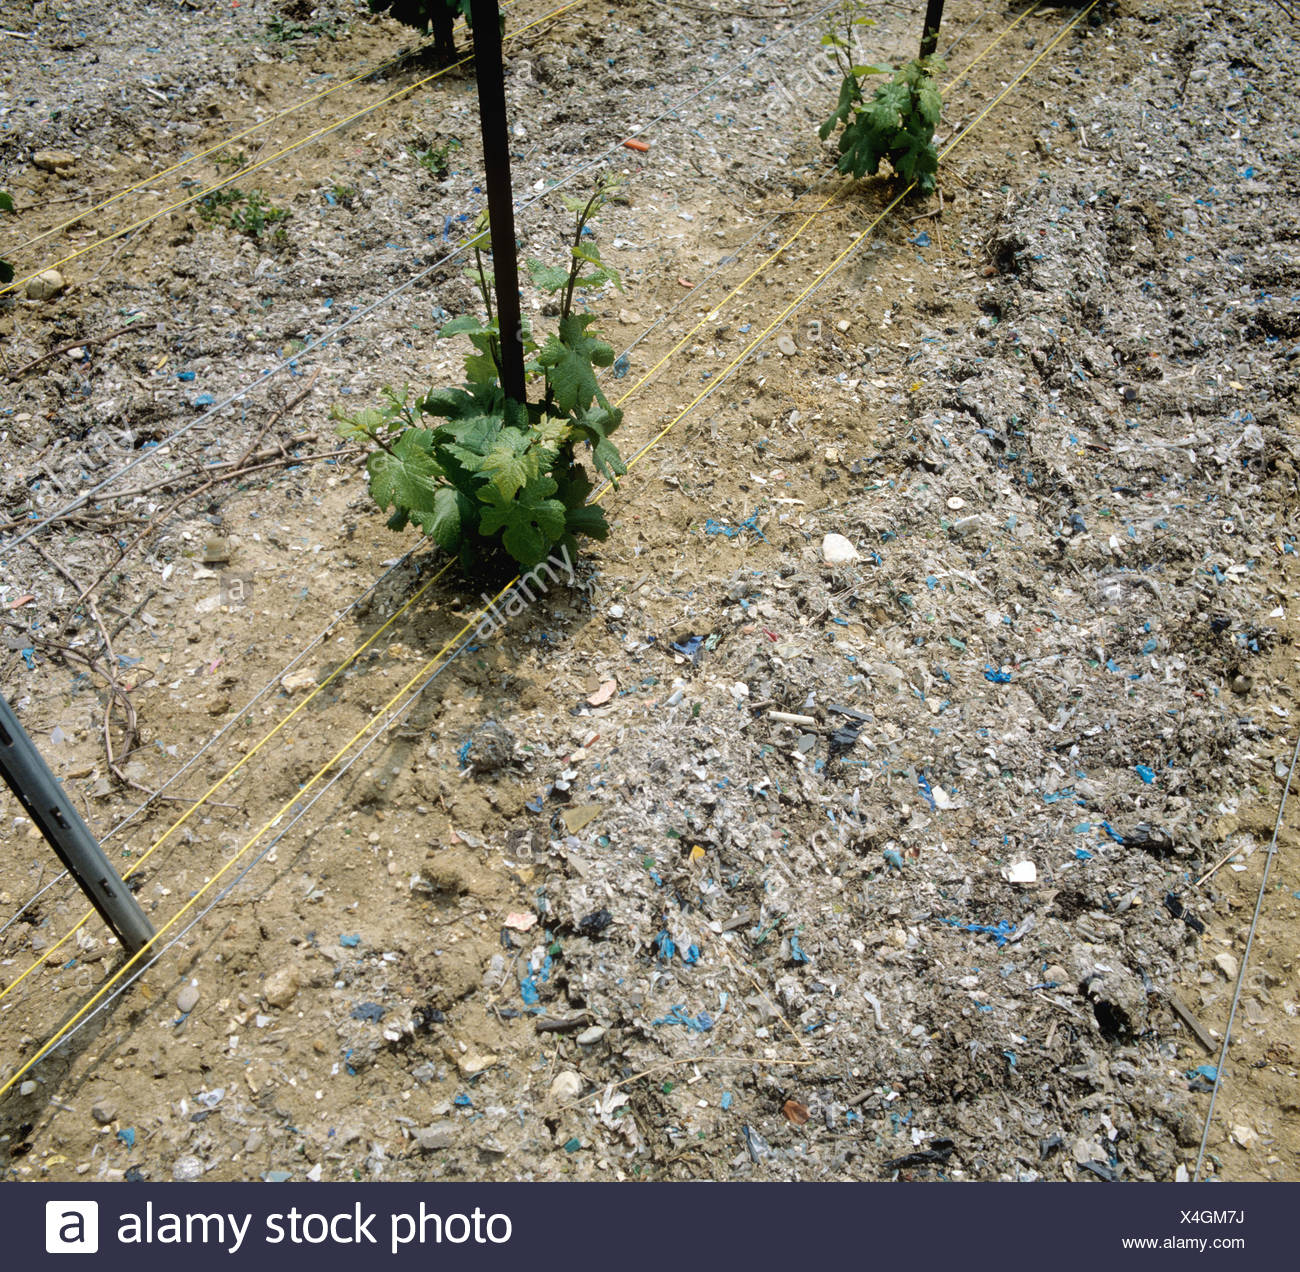 Rubbish used as a mulch between rows of vines in a vineyard in Champagne France - Stock Image